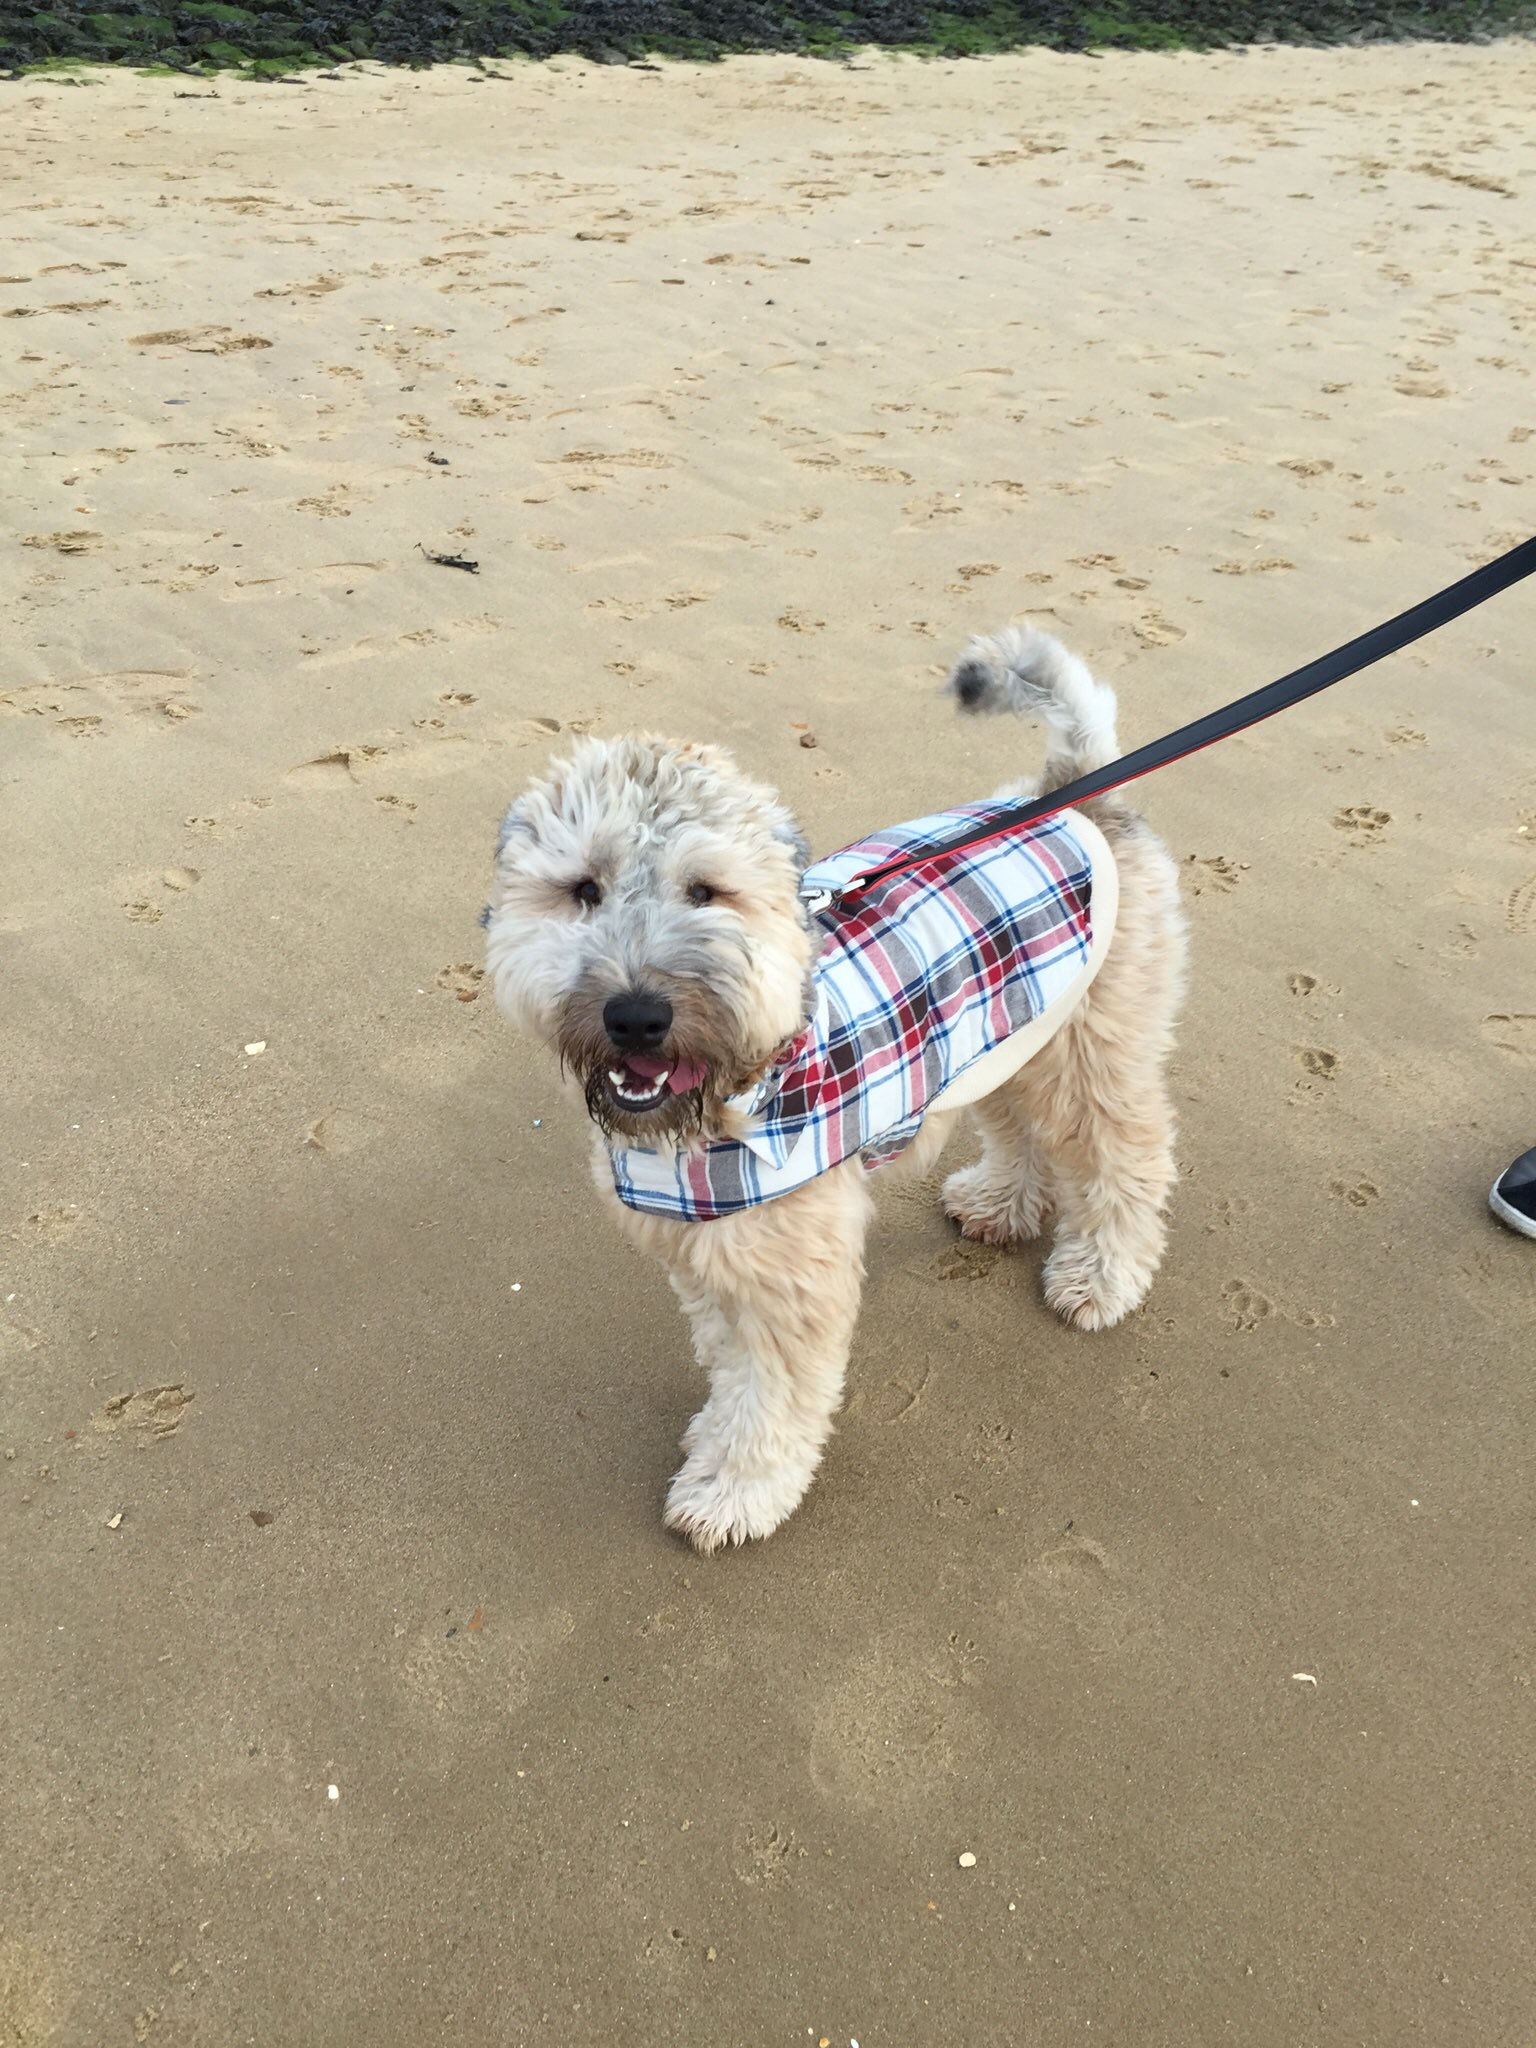 Reggie the Wheaten Terrier as a puppy on the beach! #crufts2017 #Crufts #CruftsHoliday https://t.co/oy3XgSmD4Q